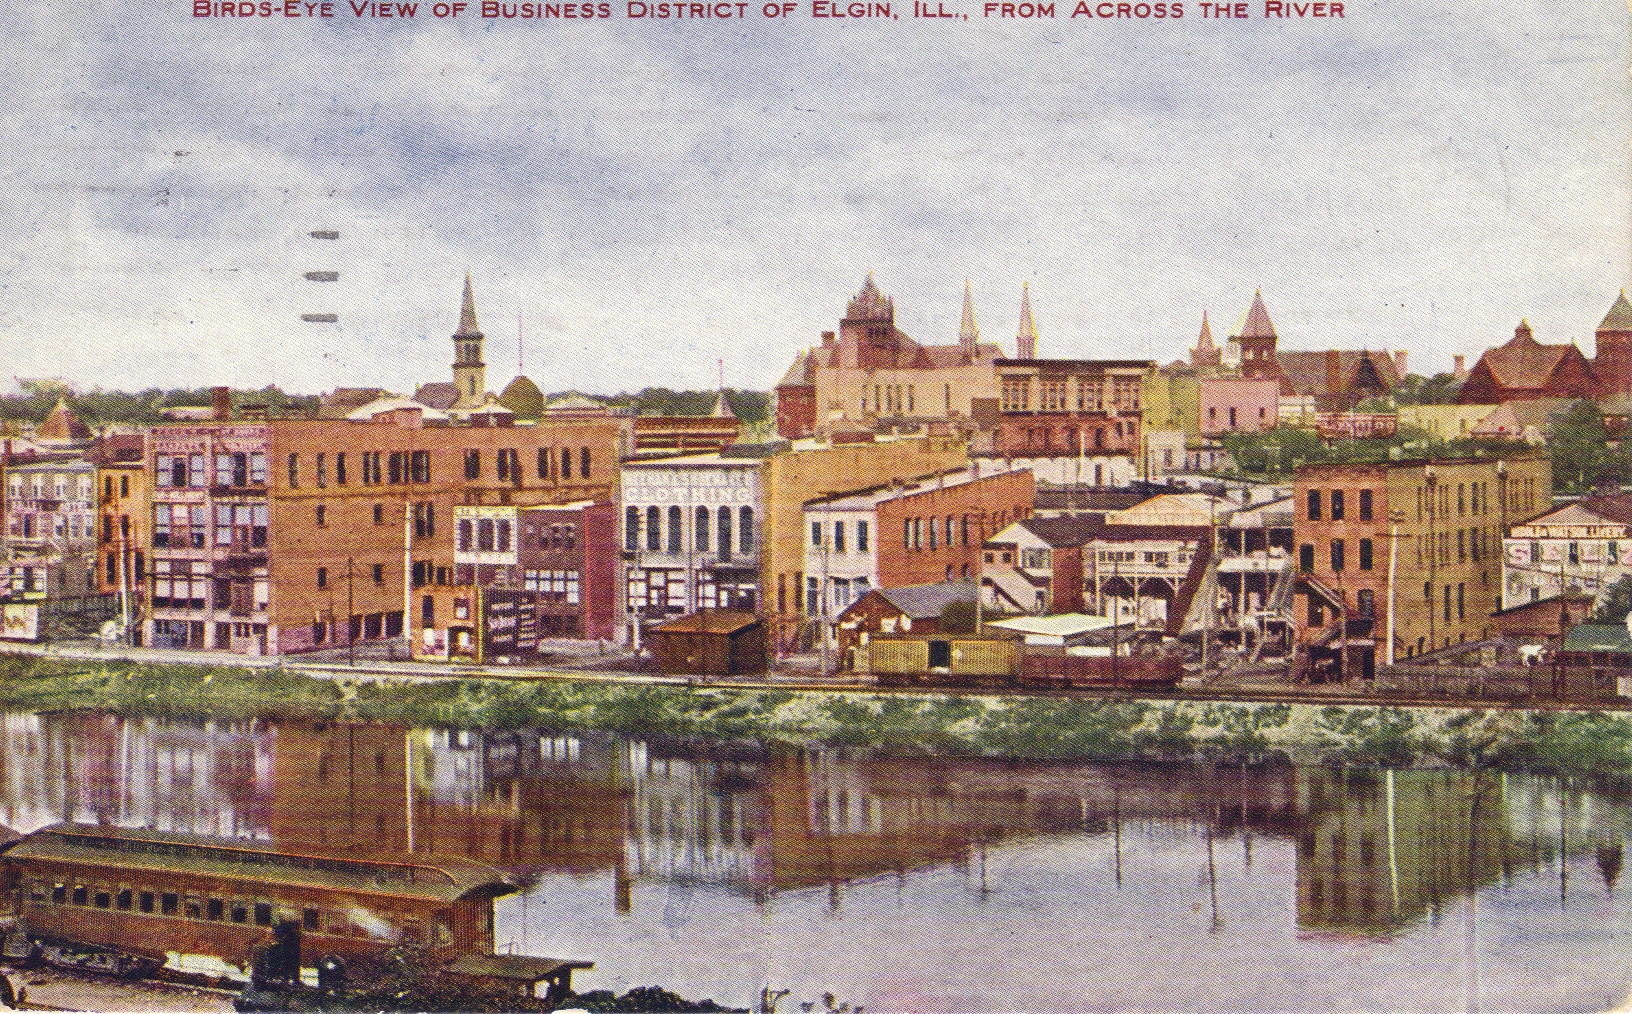 1908-Elgin-Business-District.jpg